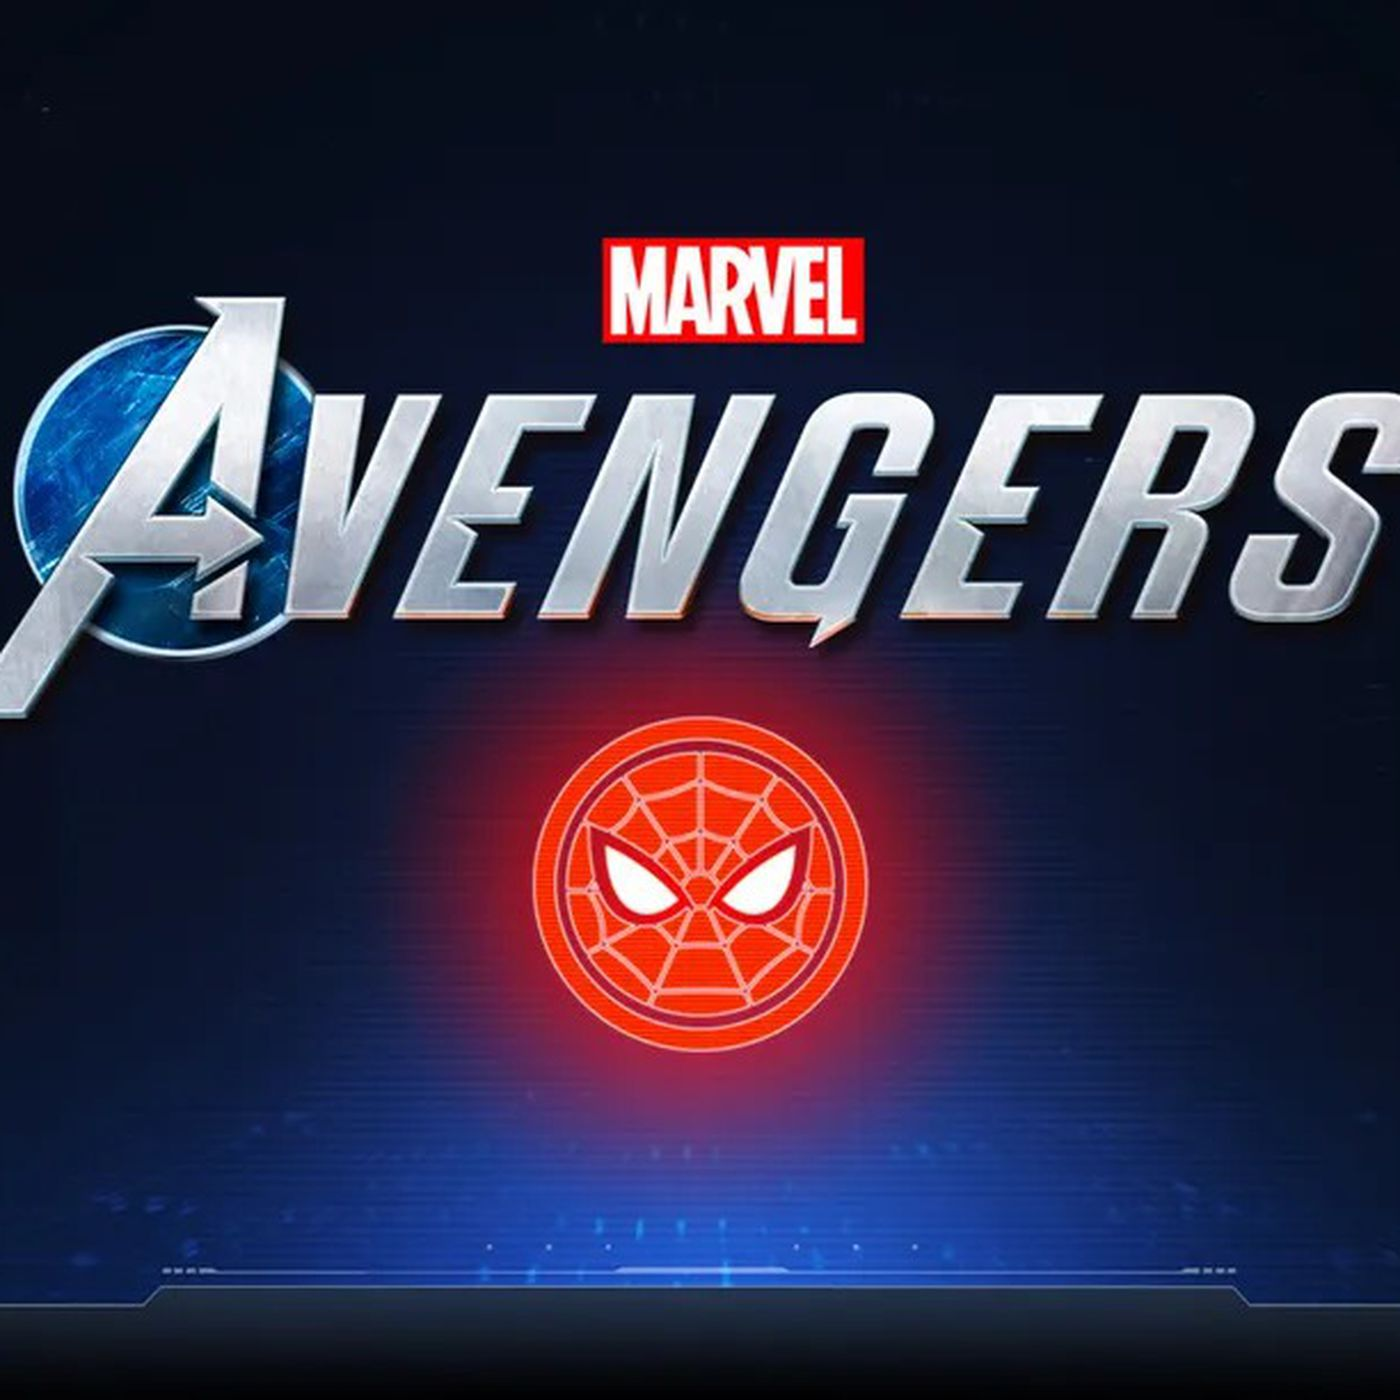 Marvels Avengers Game Get a Playstation Exclusive-Spiderman , Arriving 2021.